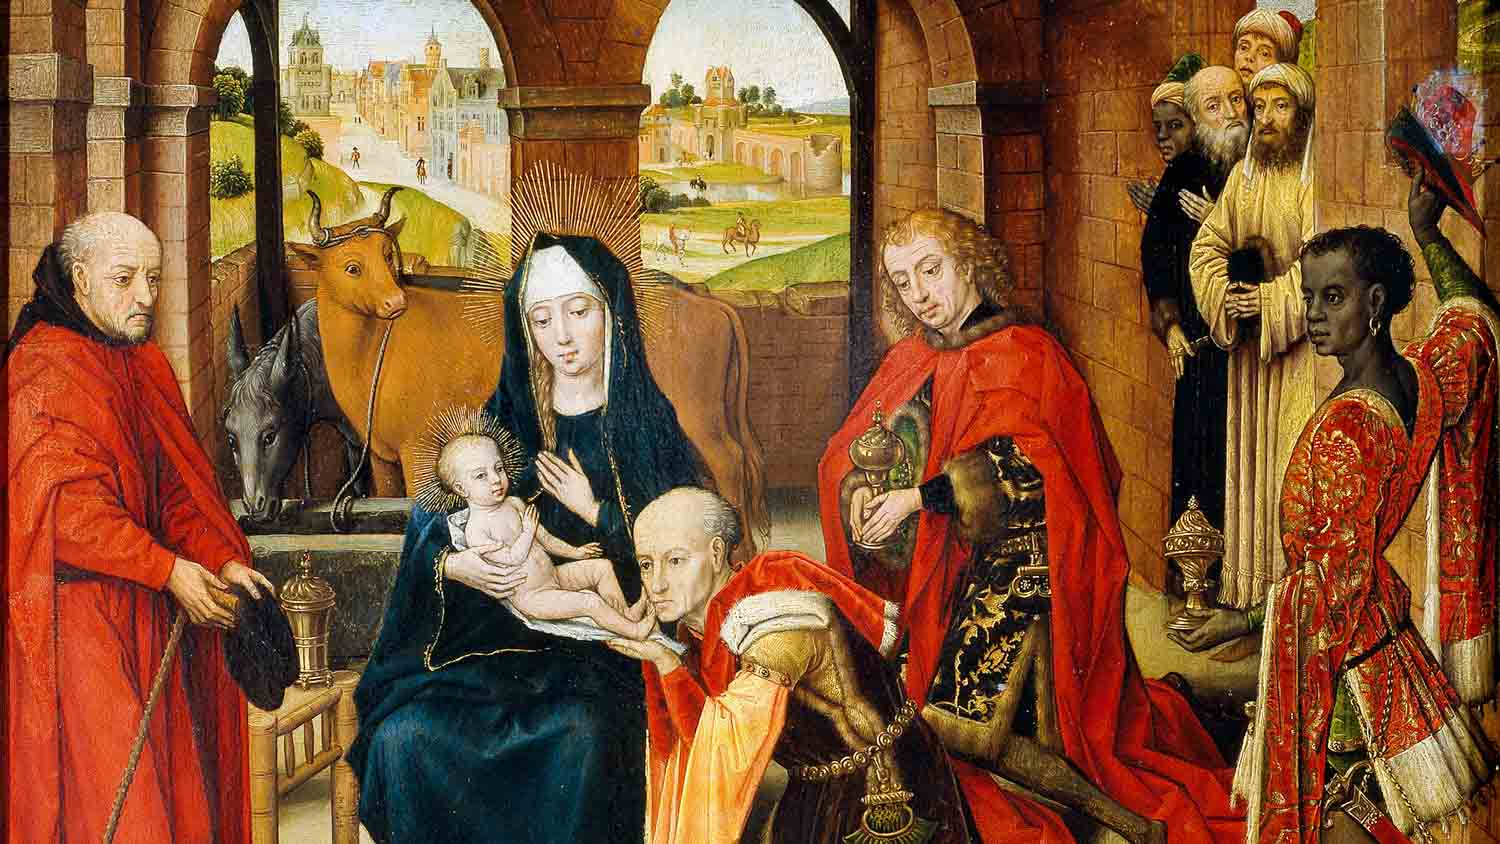 Adoration of the Magi (Room 15)